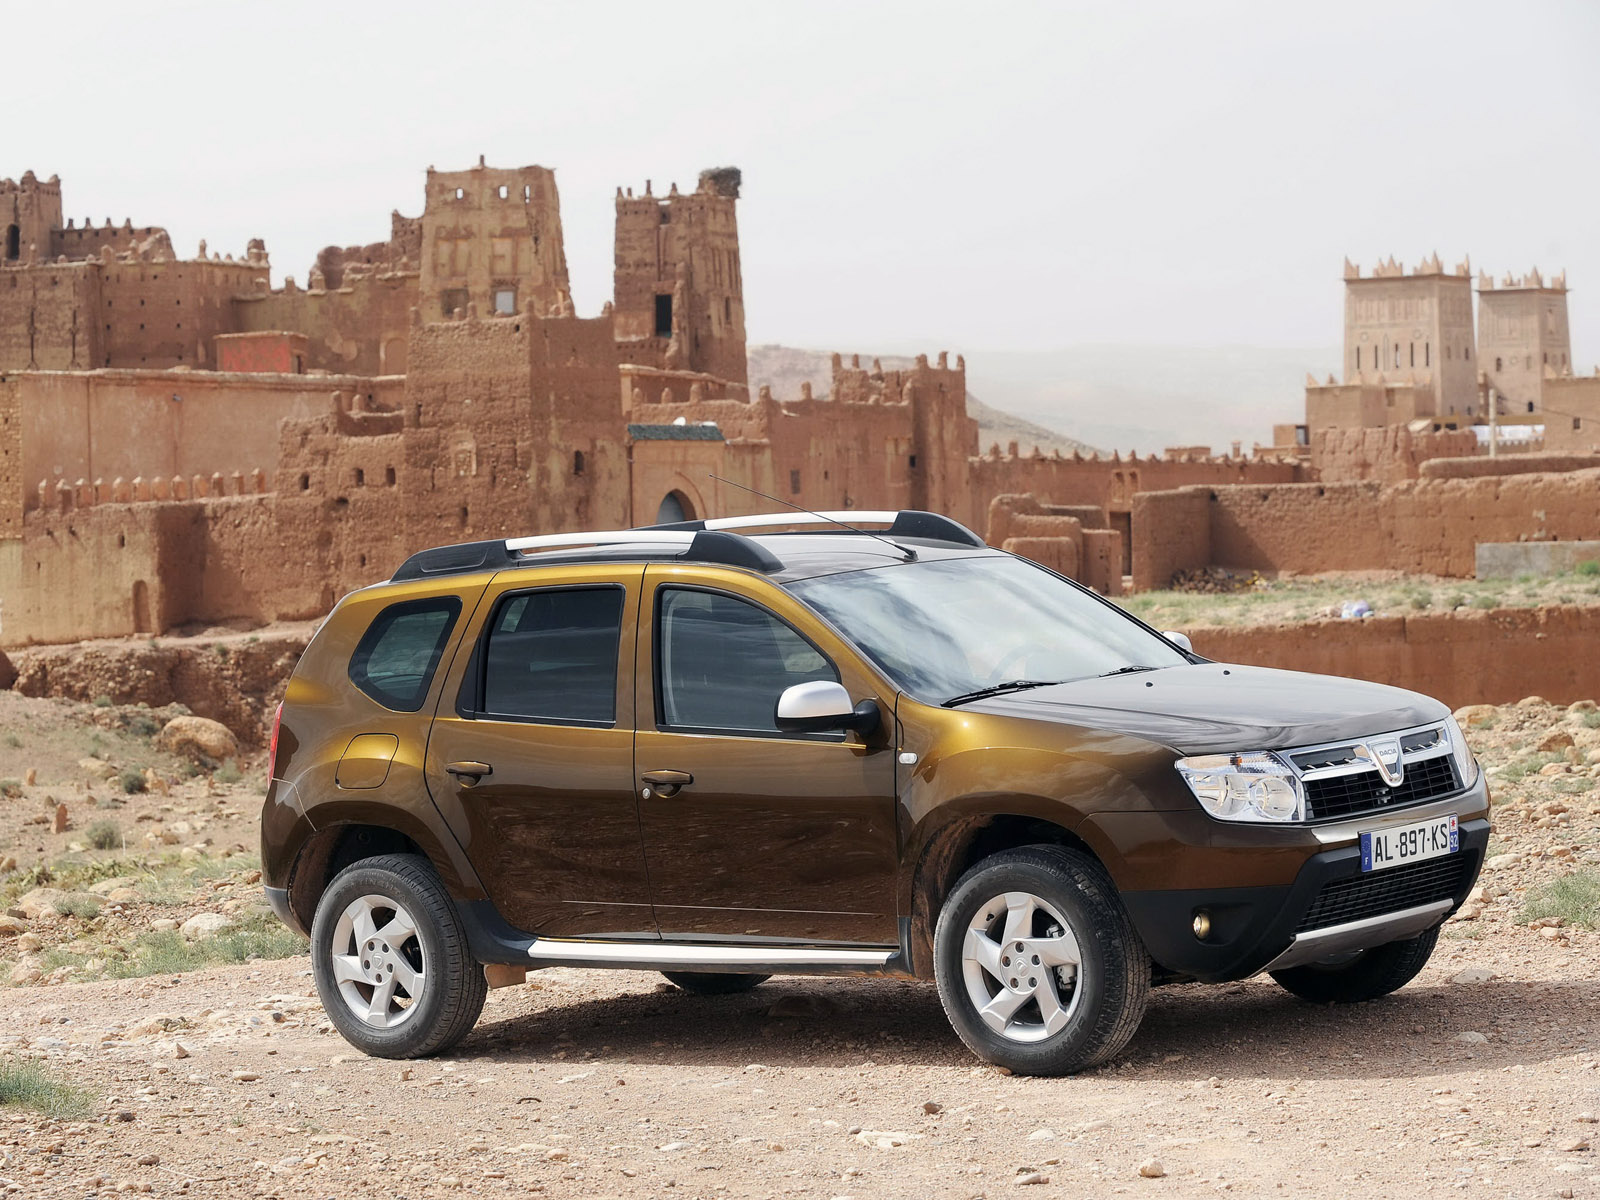 dacia duster 2010 dacia duster 2010 photo 18 car in pictures car photo gallery. Black Bedroom Furniture Sets. Home Design Ideas